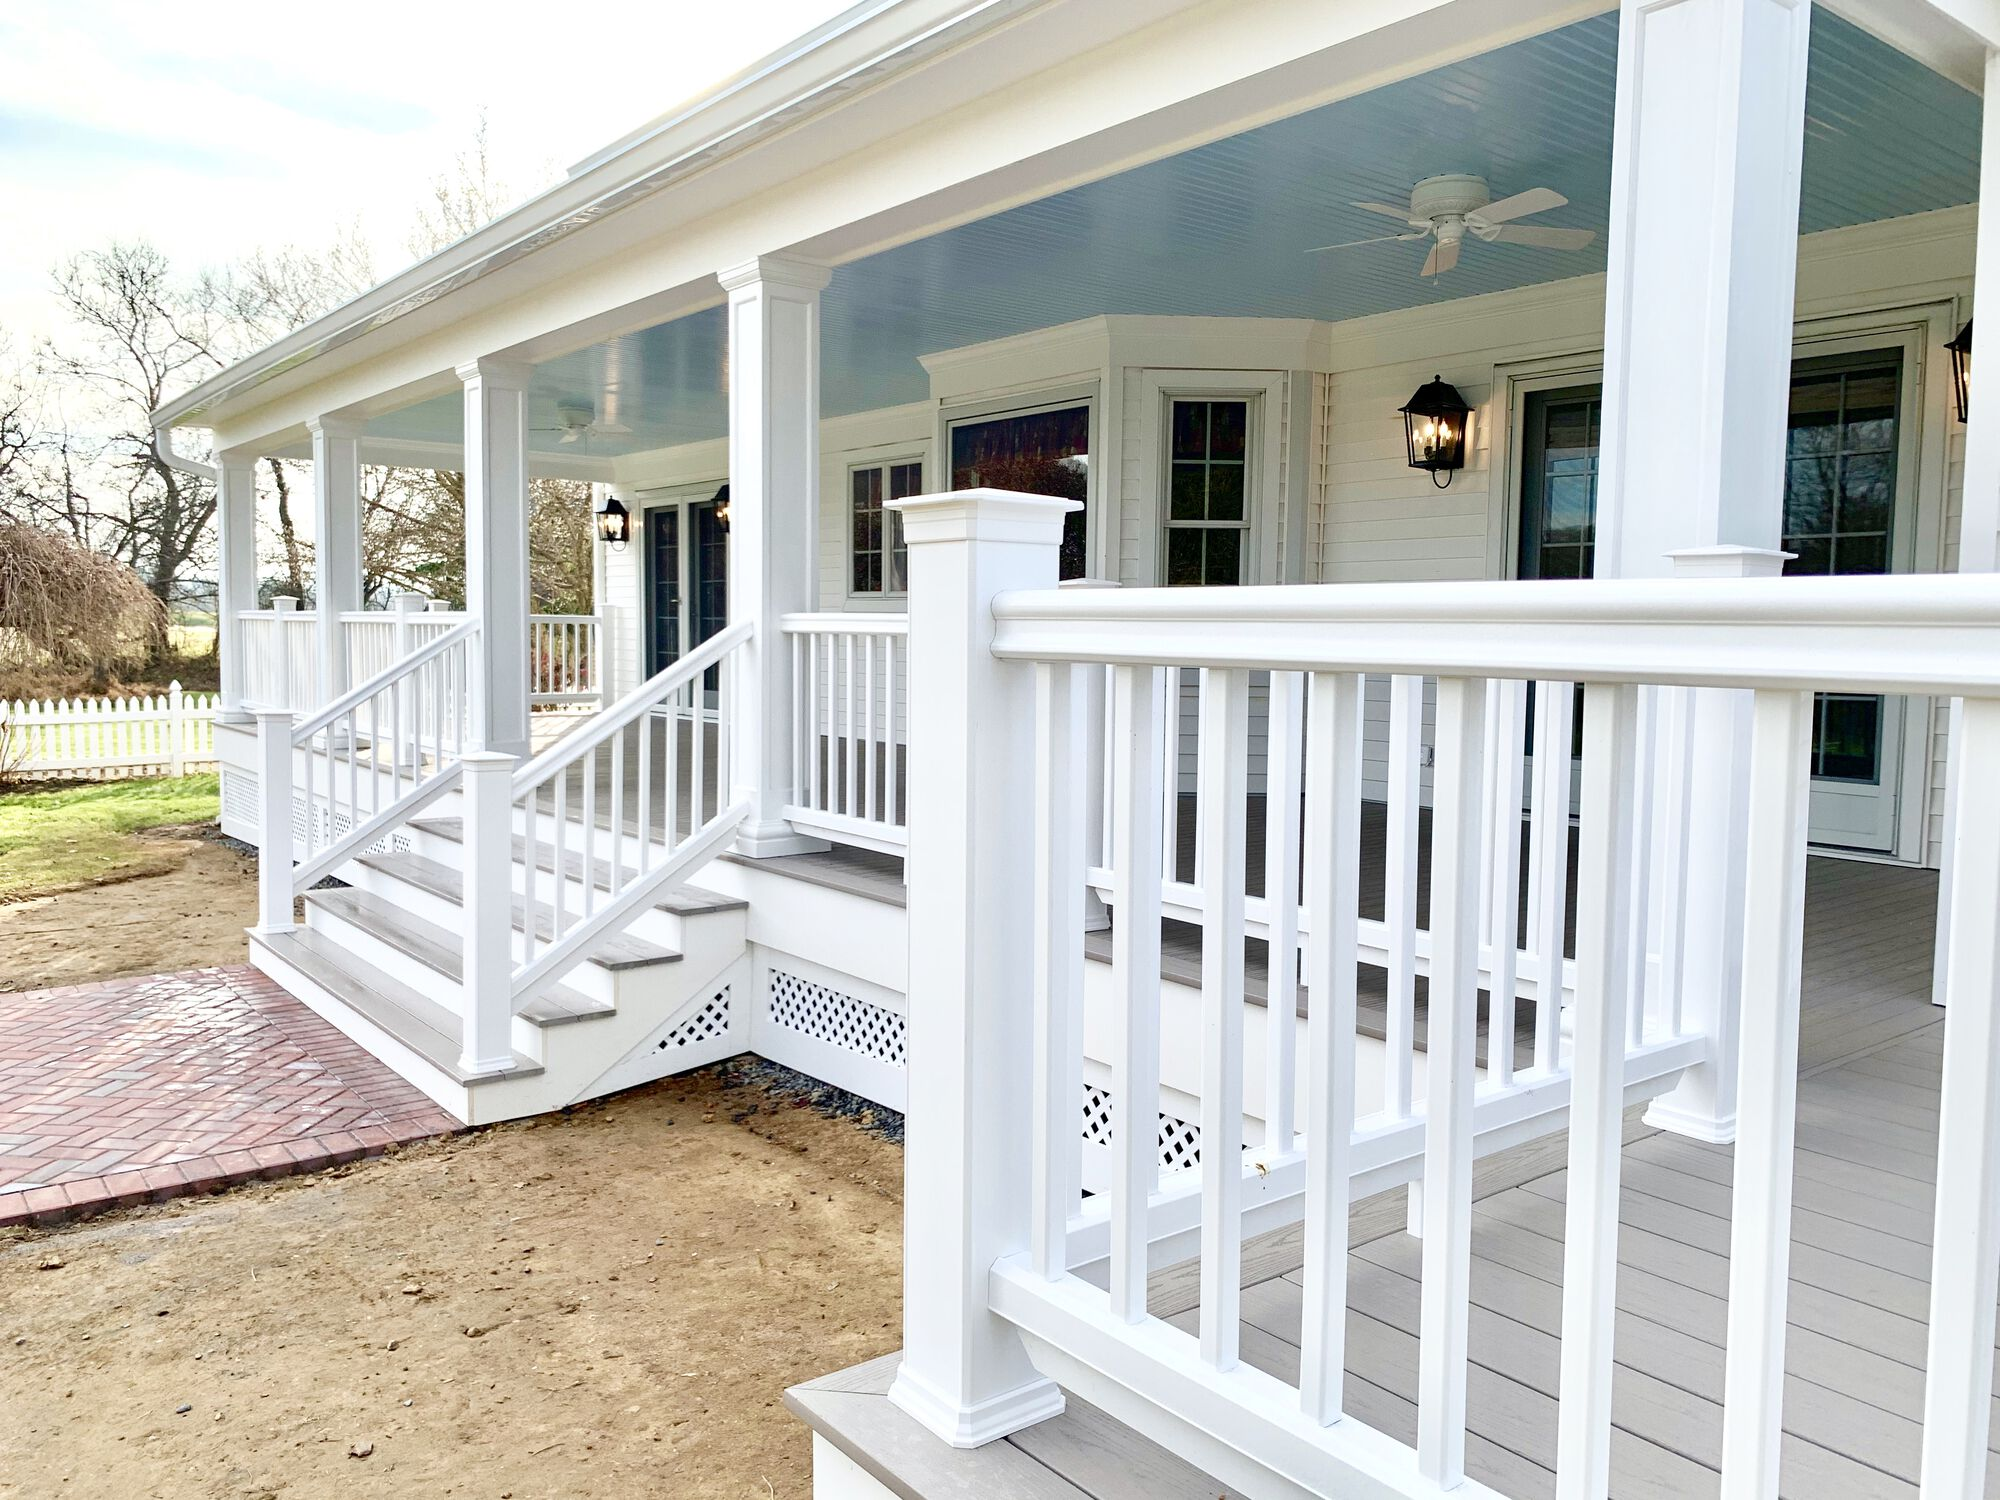 Covered Porch Addition with Azek Grooved Decking, Timbertech Radiance Coastal White Rails, Grooved Ceiling, Lighting and Fans in Washington, Warren County NJ